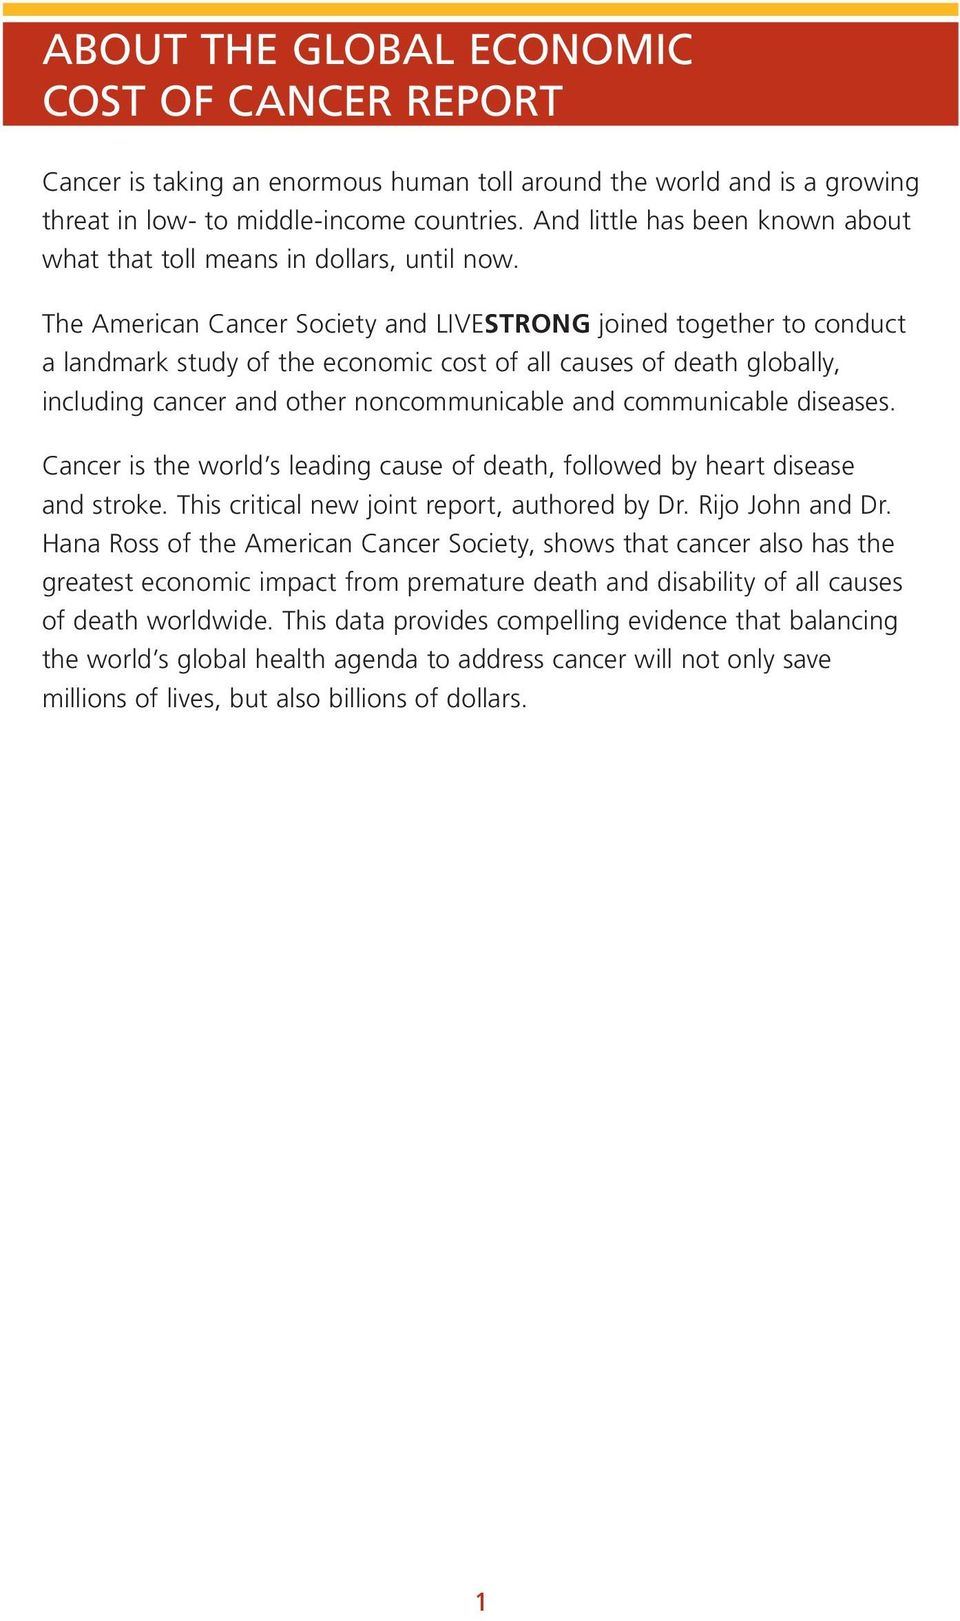 The American Cancer Society and LIVESTRONG joined together to conduct a landmark study of the economic cost of all causes of death globally, including cancer and other noncommunicable and